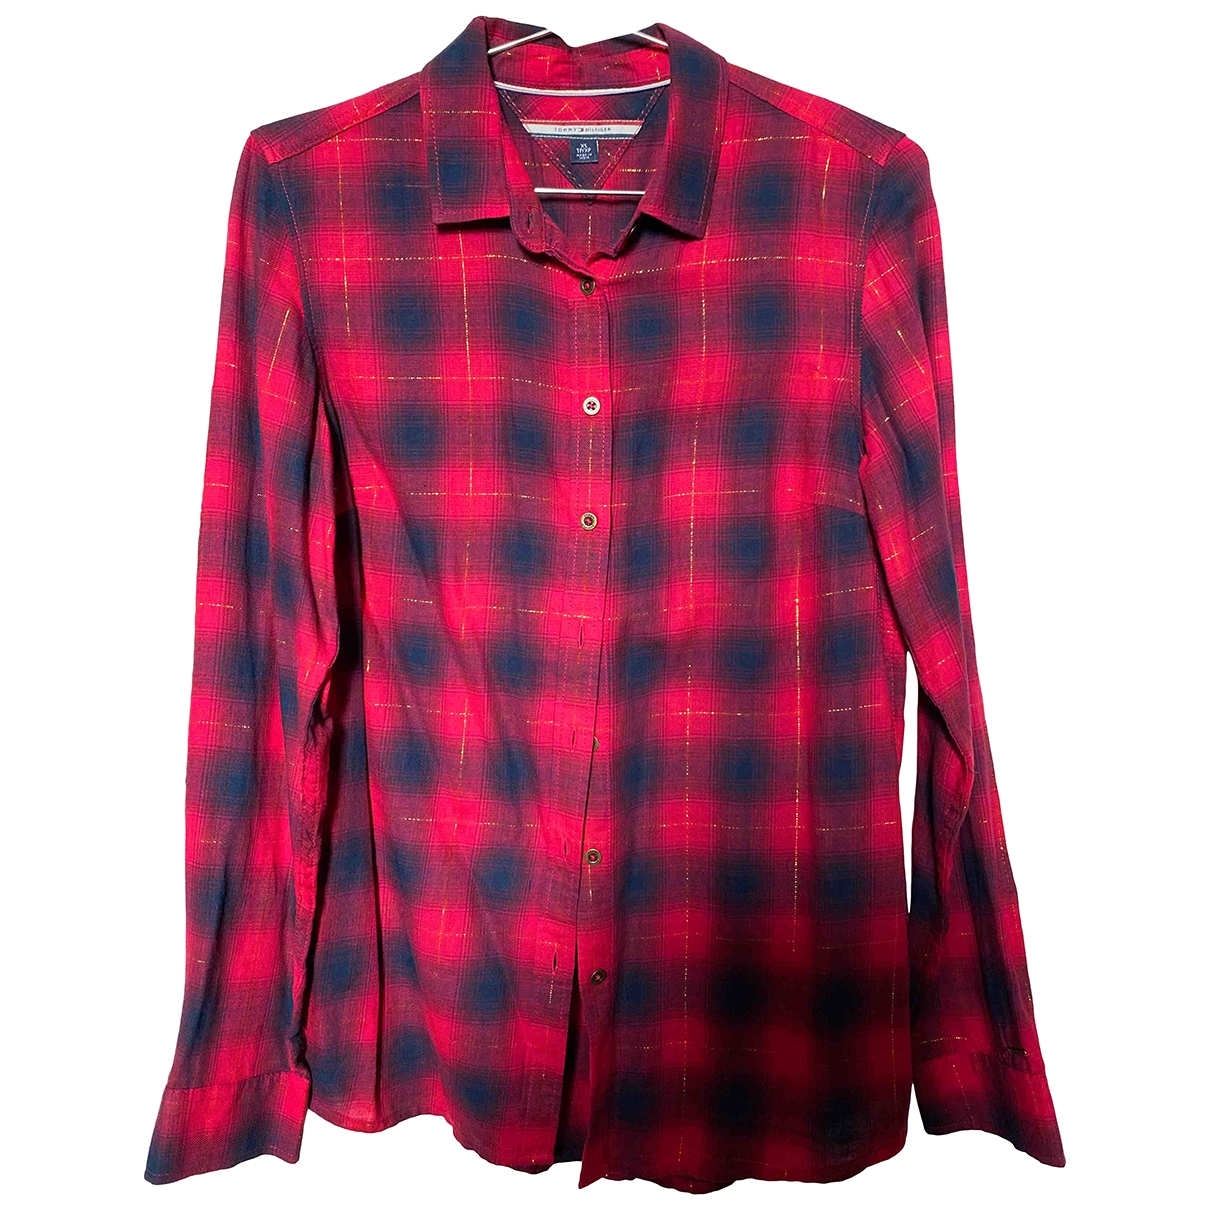 Tommy Hilfiger \N Red Cotton  top for Women XS International